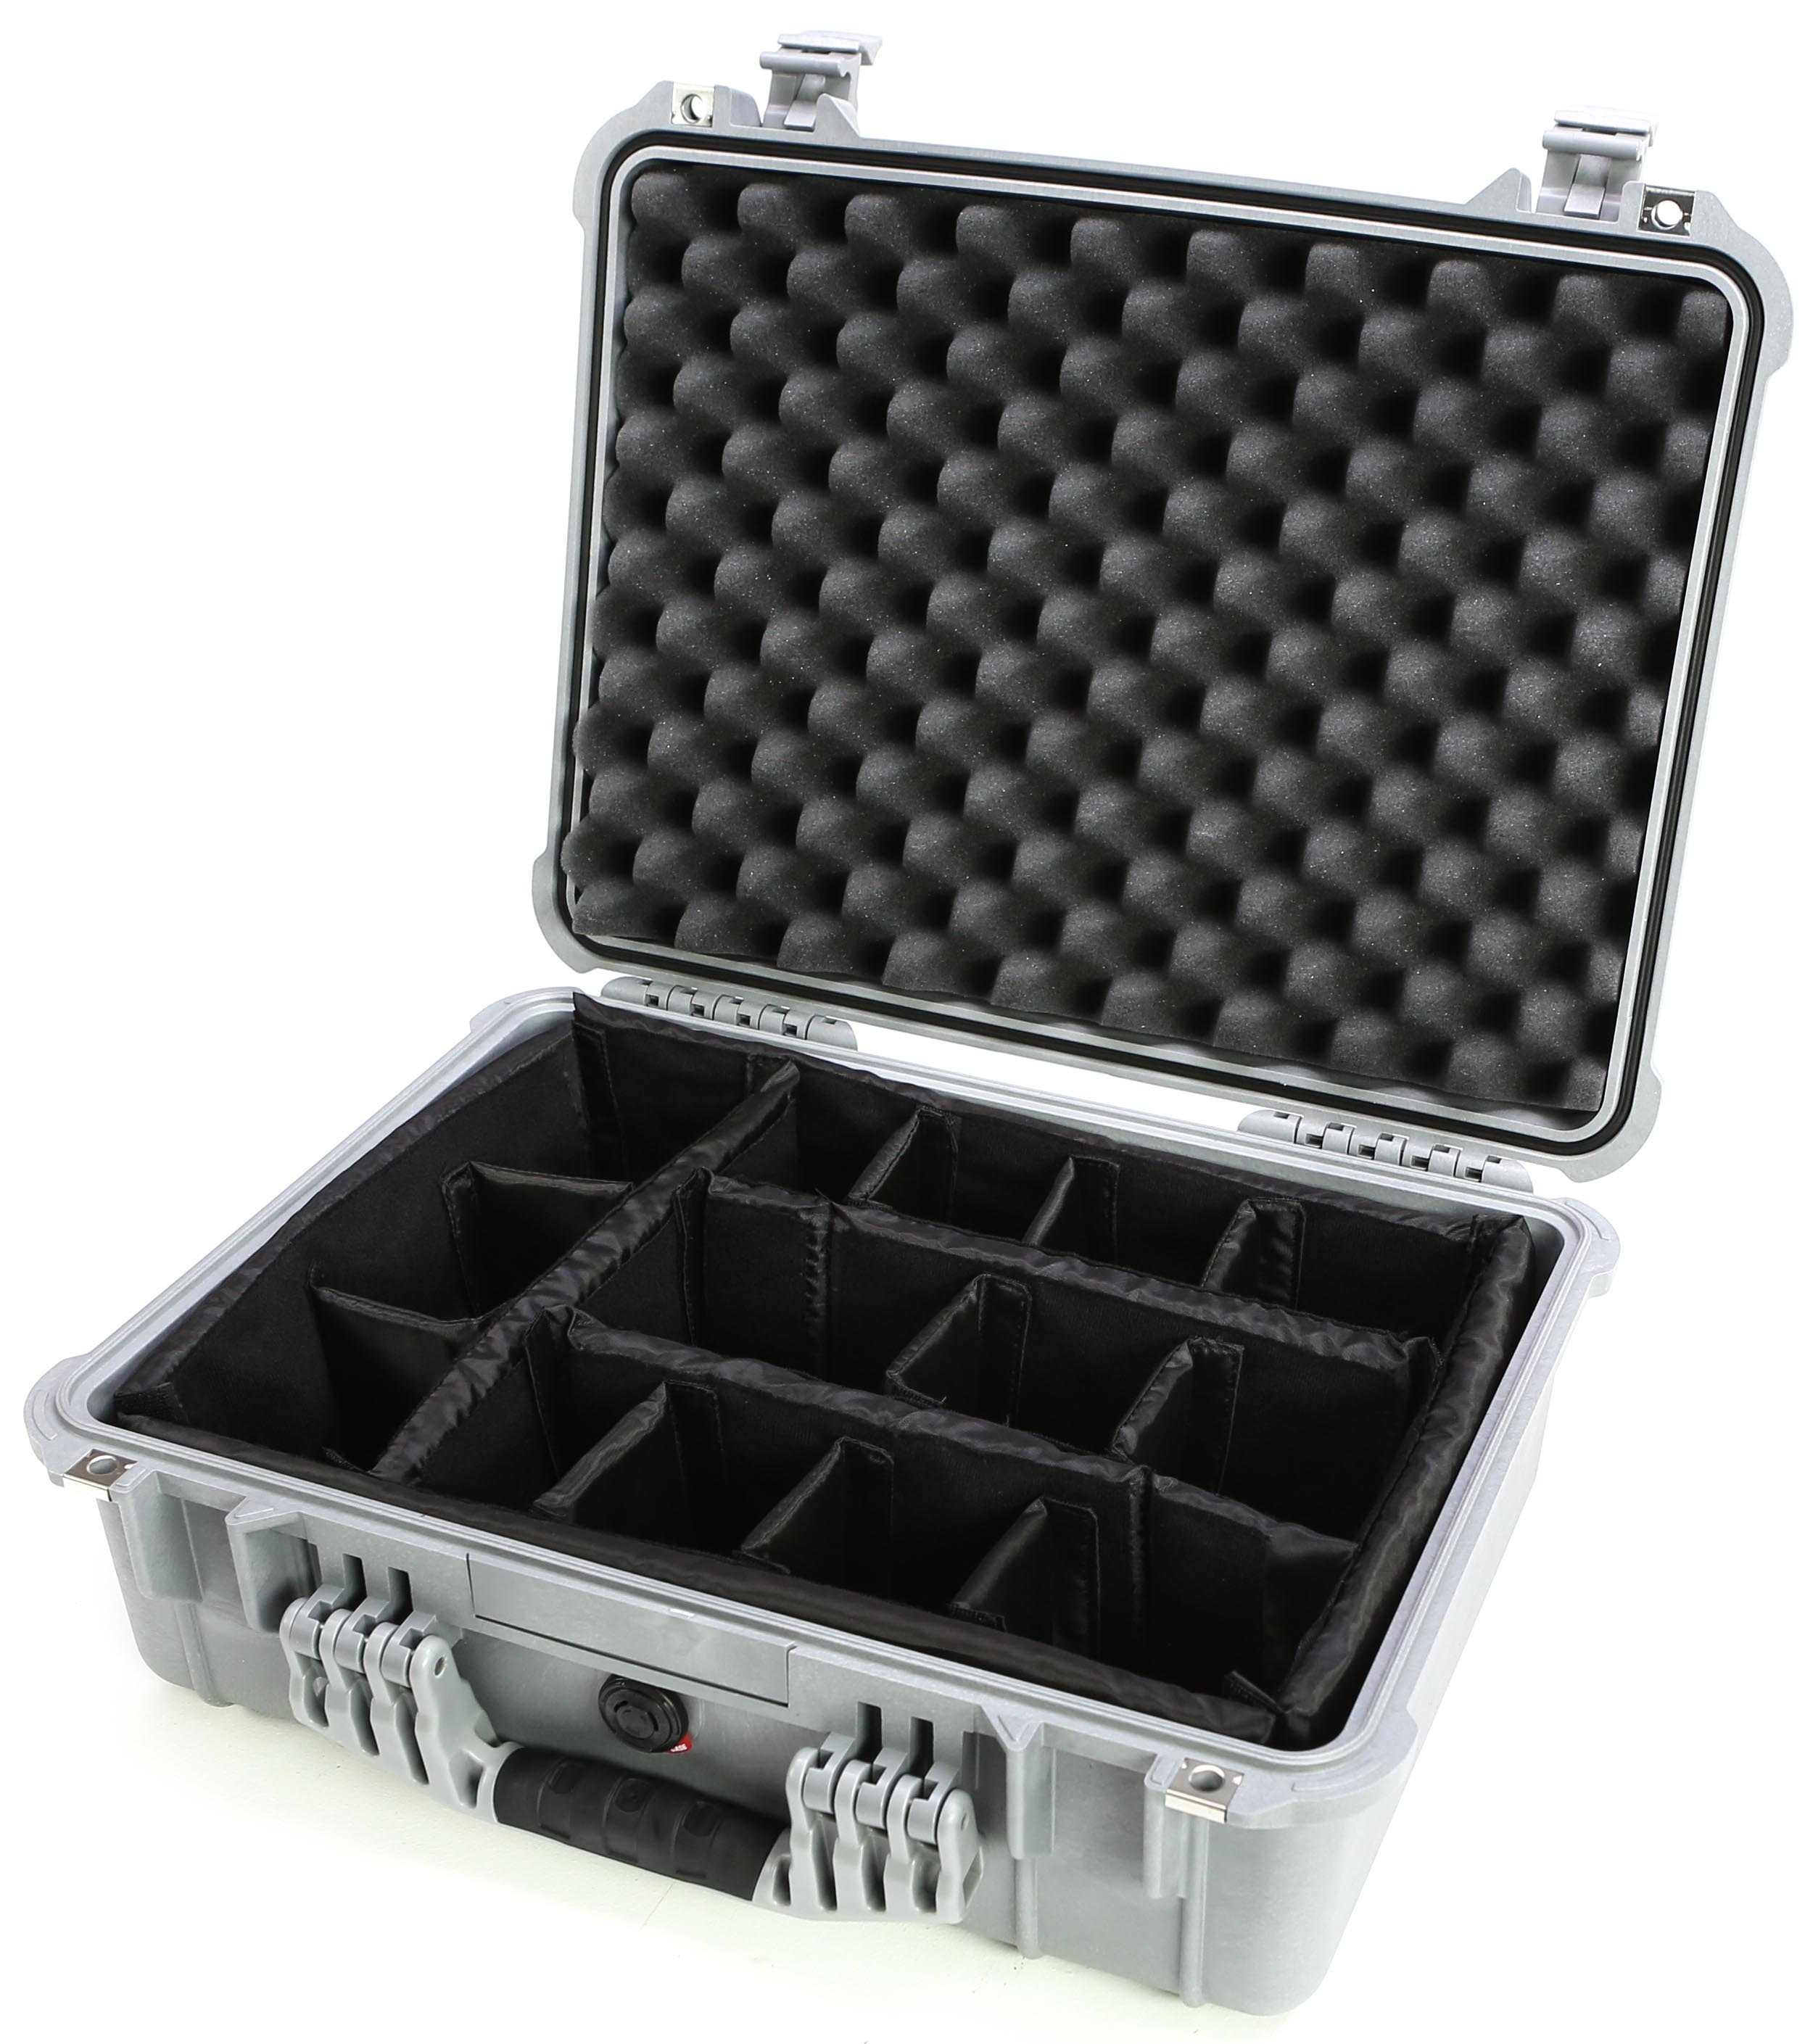 Pelican 1524 Case with Padded Dividers (Silver)